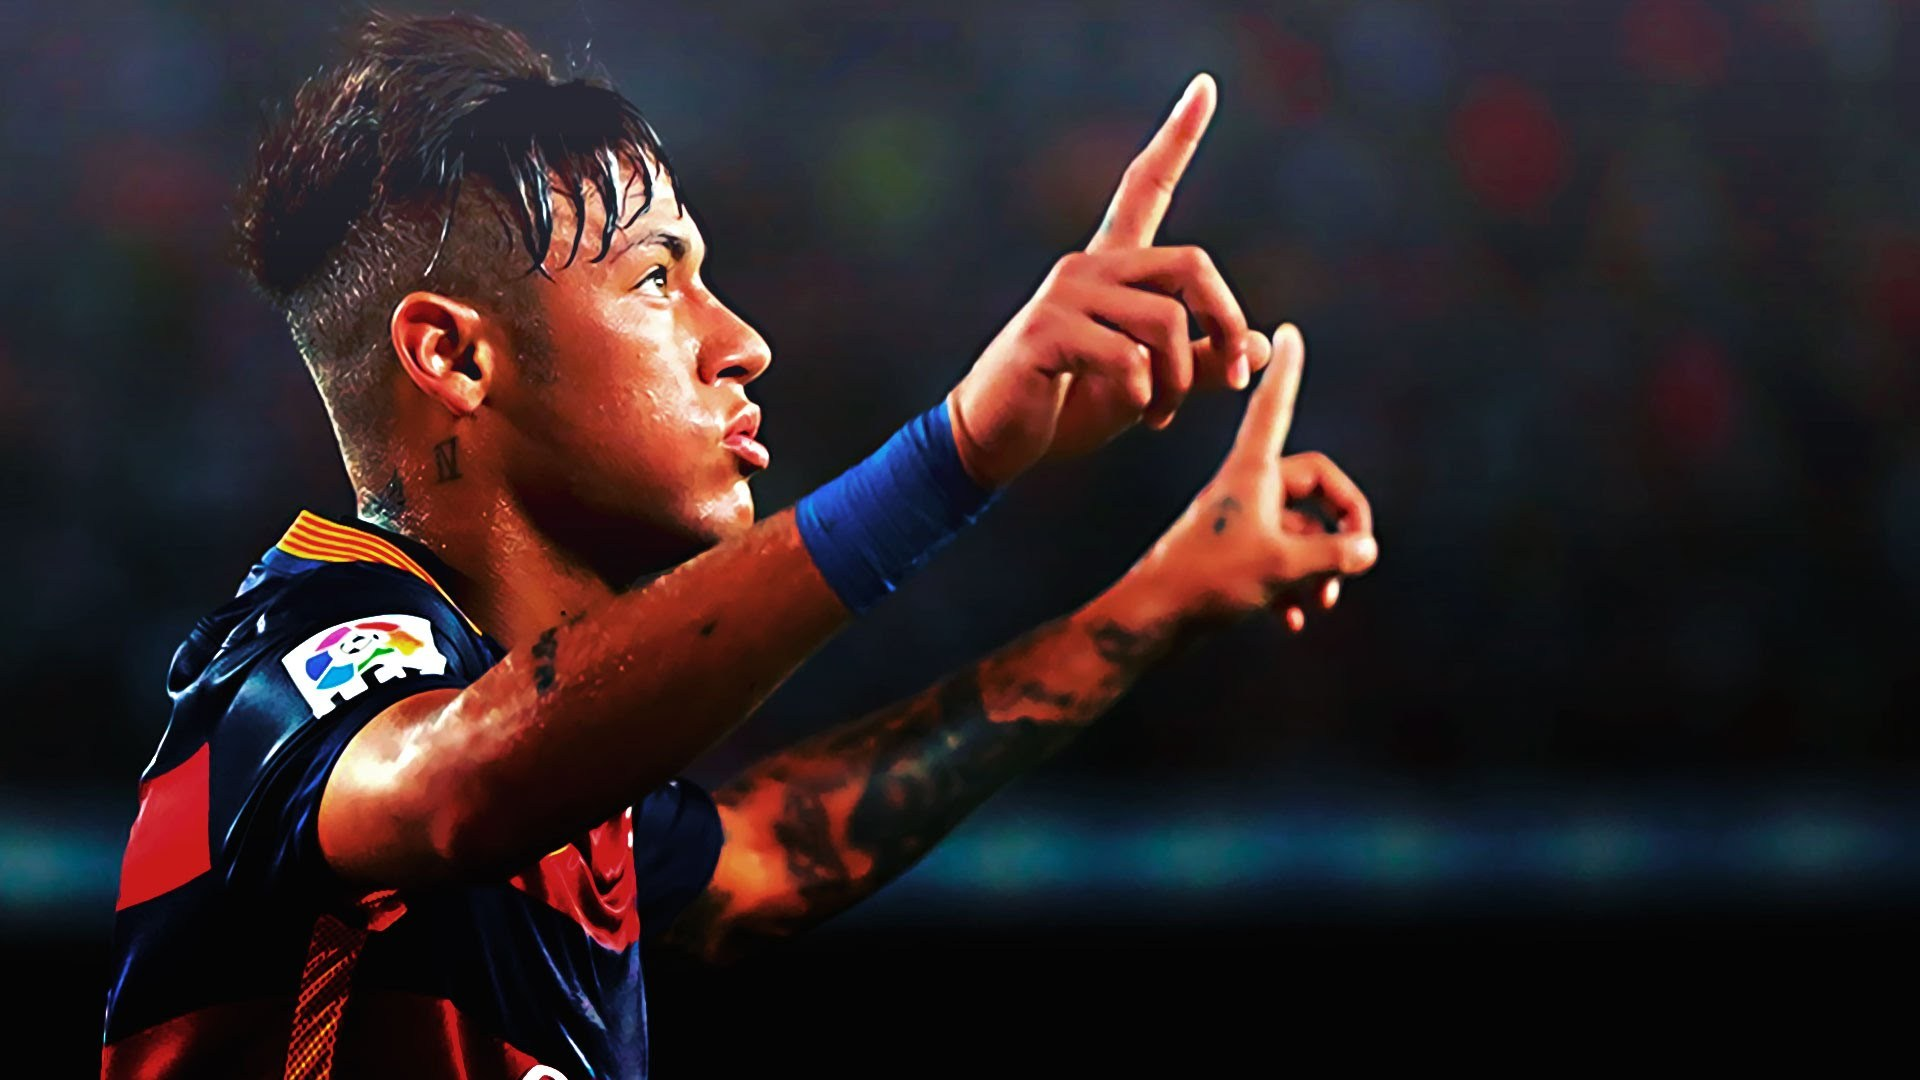 amazing neymar football player hd free raise hands mobile bakground desktop photos